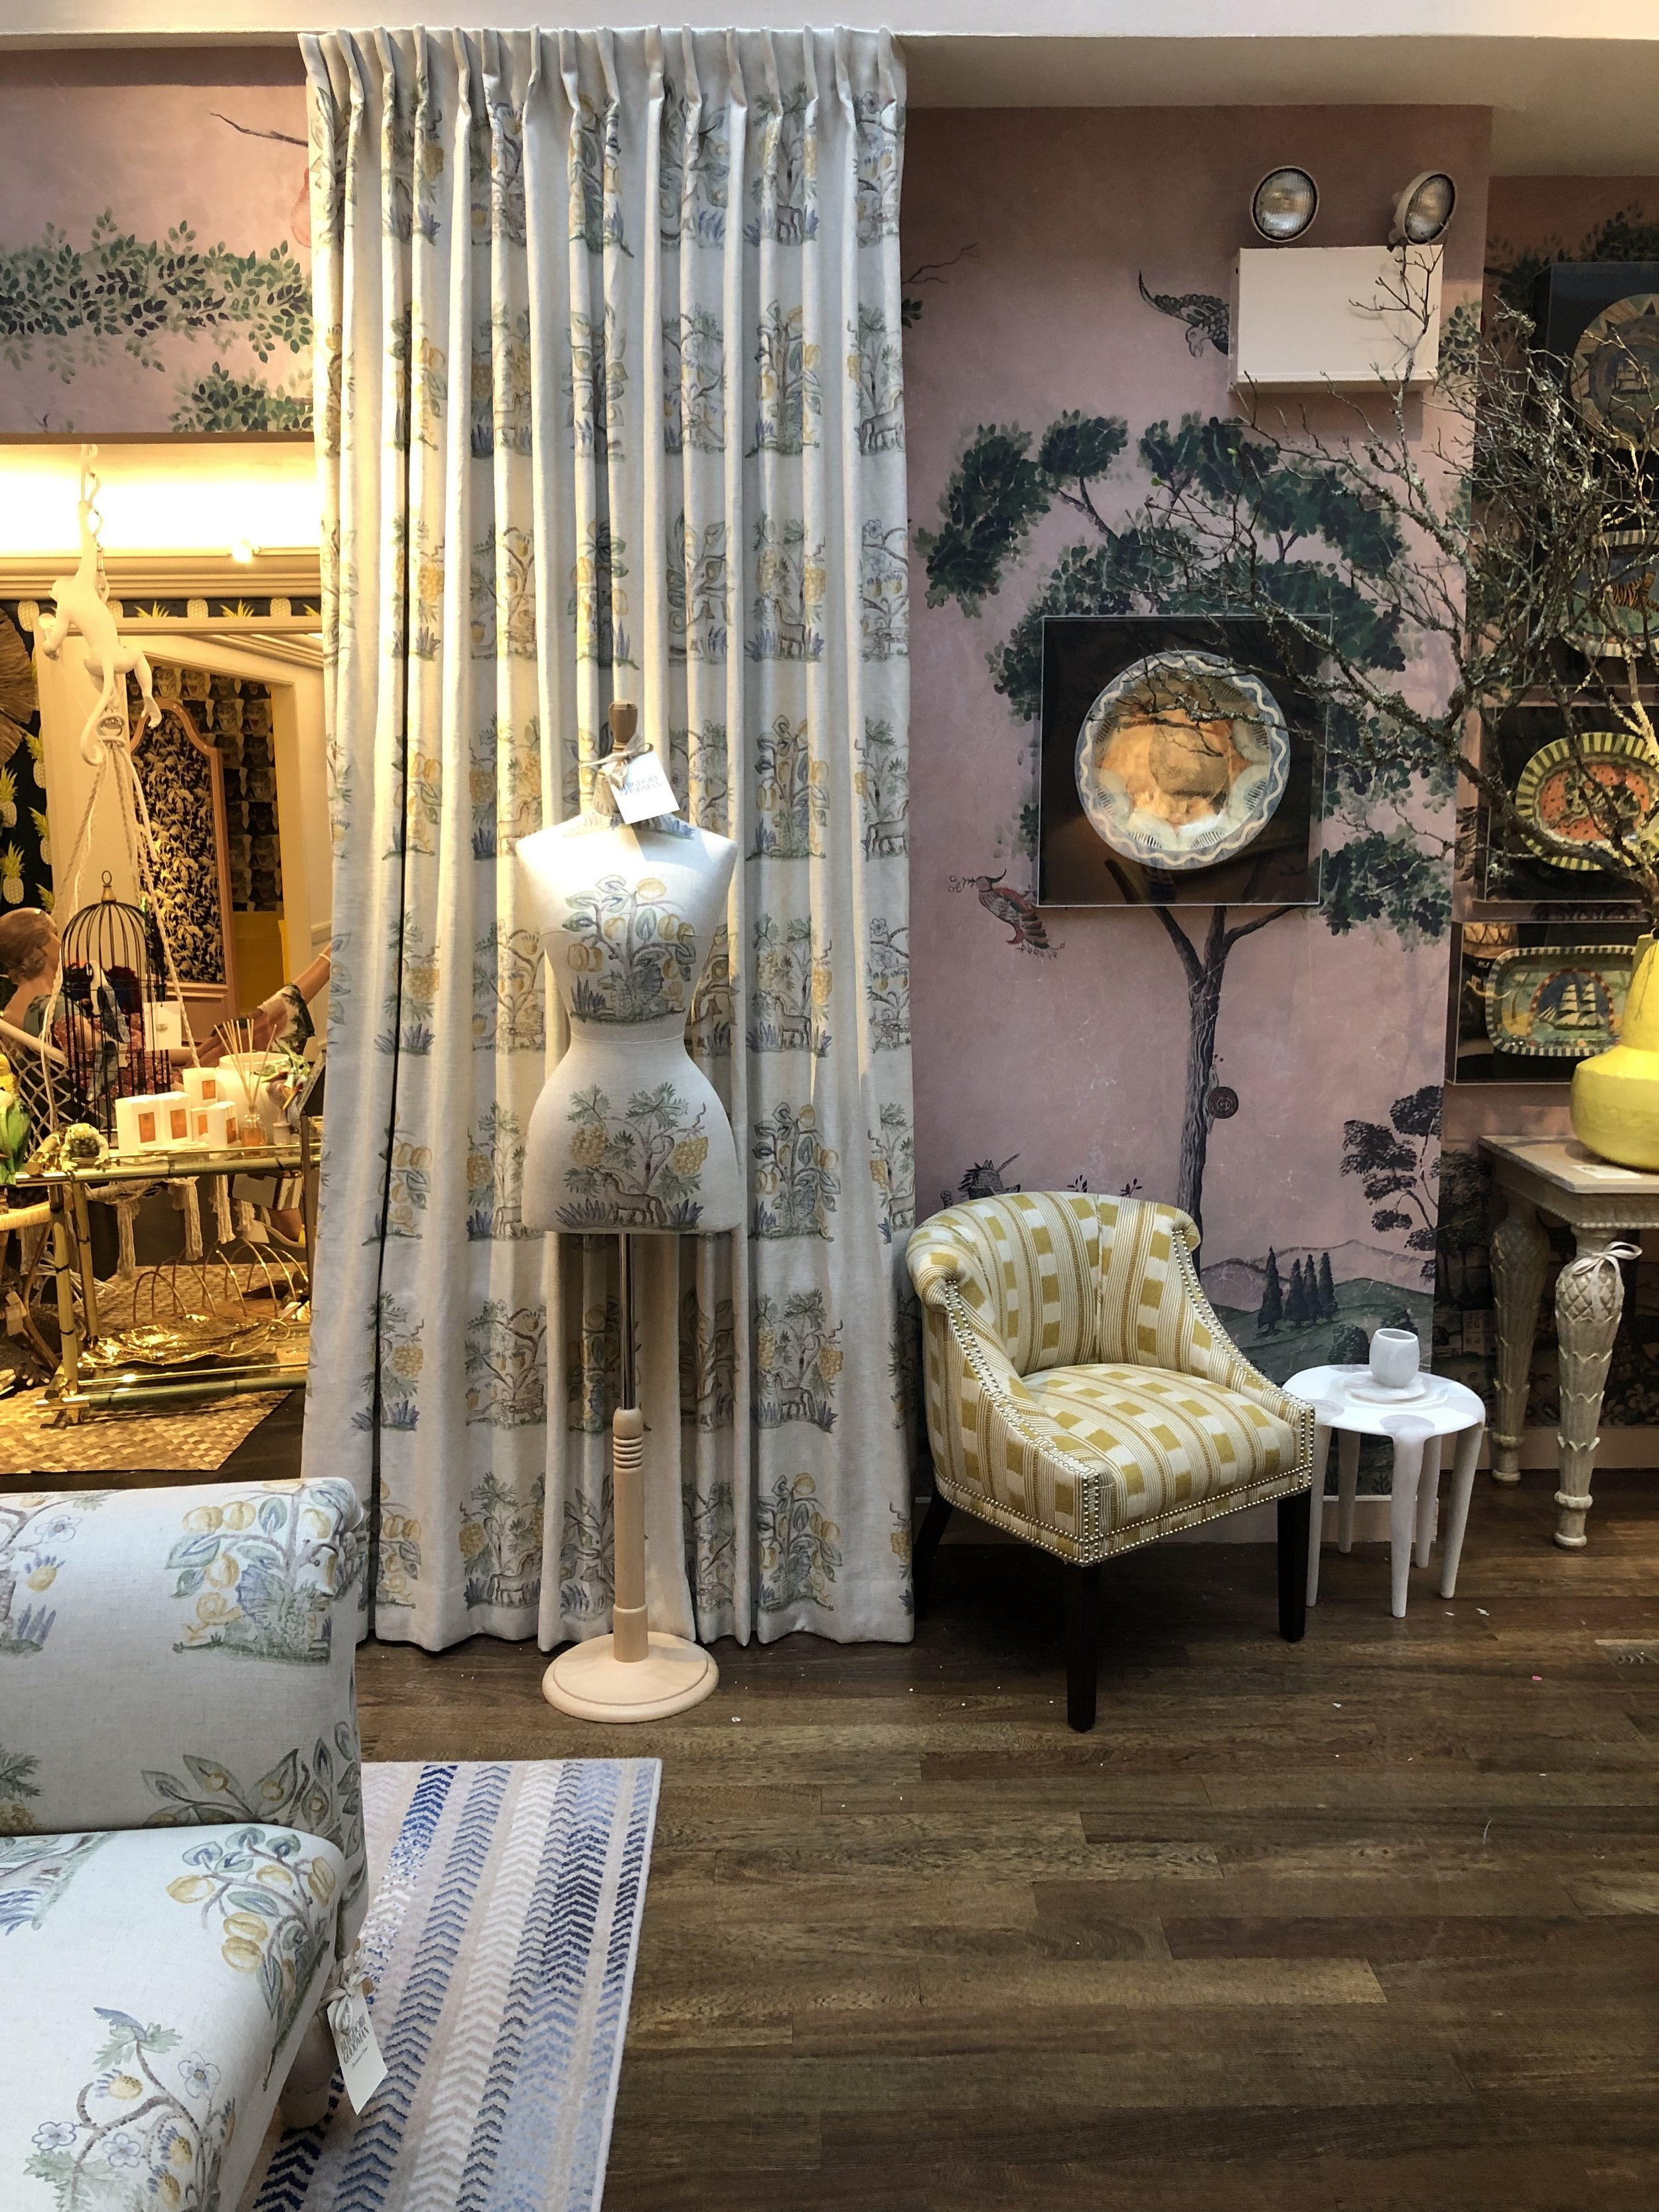 Interior_Design_Kit_Kemp's_perfect_world_of_Interiors_Doreen_Chambers_Luxury_Interior_design_Brooklyn_New_York_Brooklyn_New_York_Fort_Lauderdale_Miami